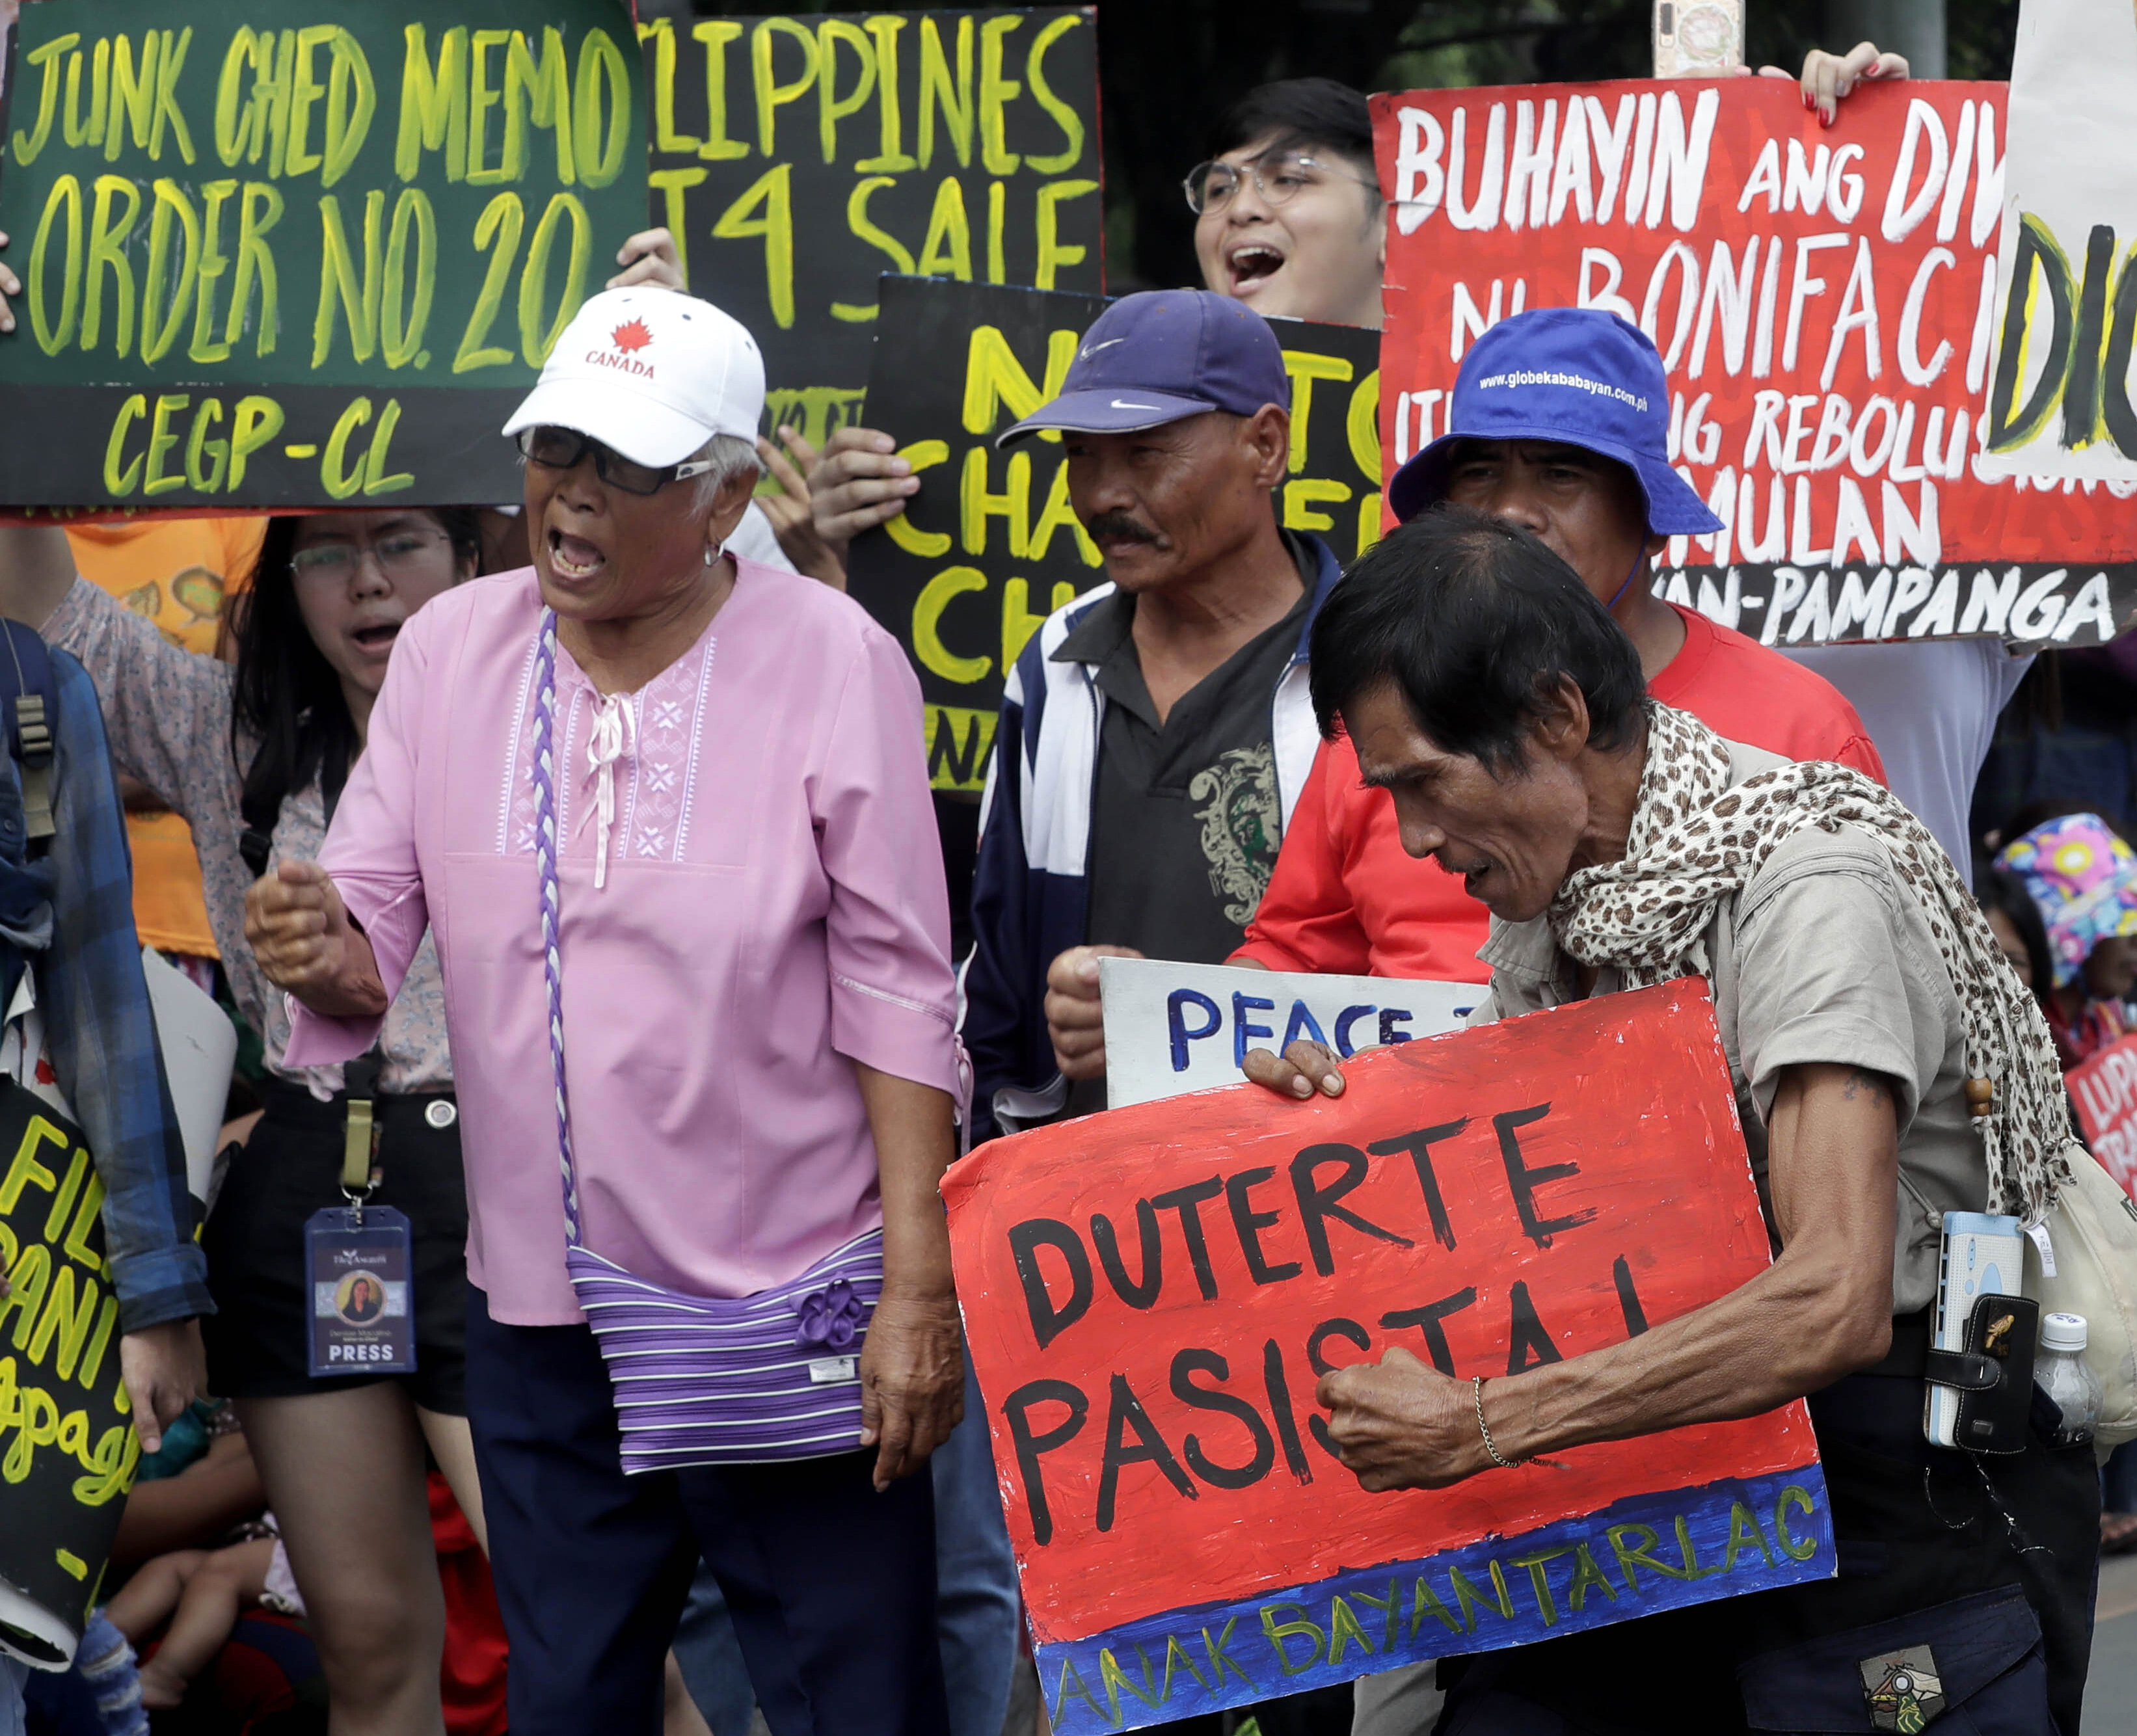 Amid protests, Duterte to address Congress led by his allies